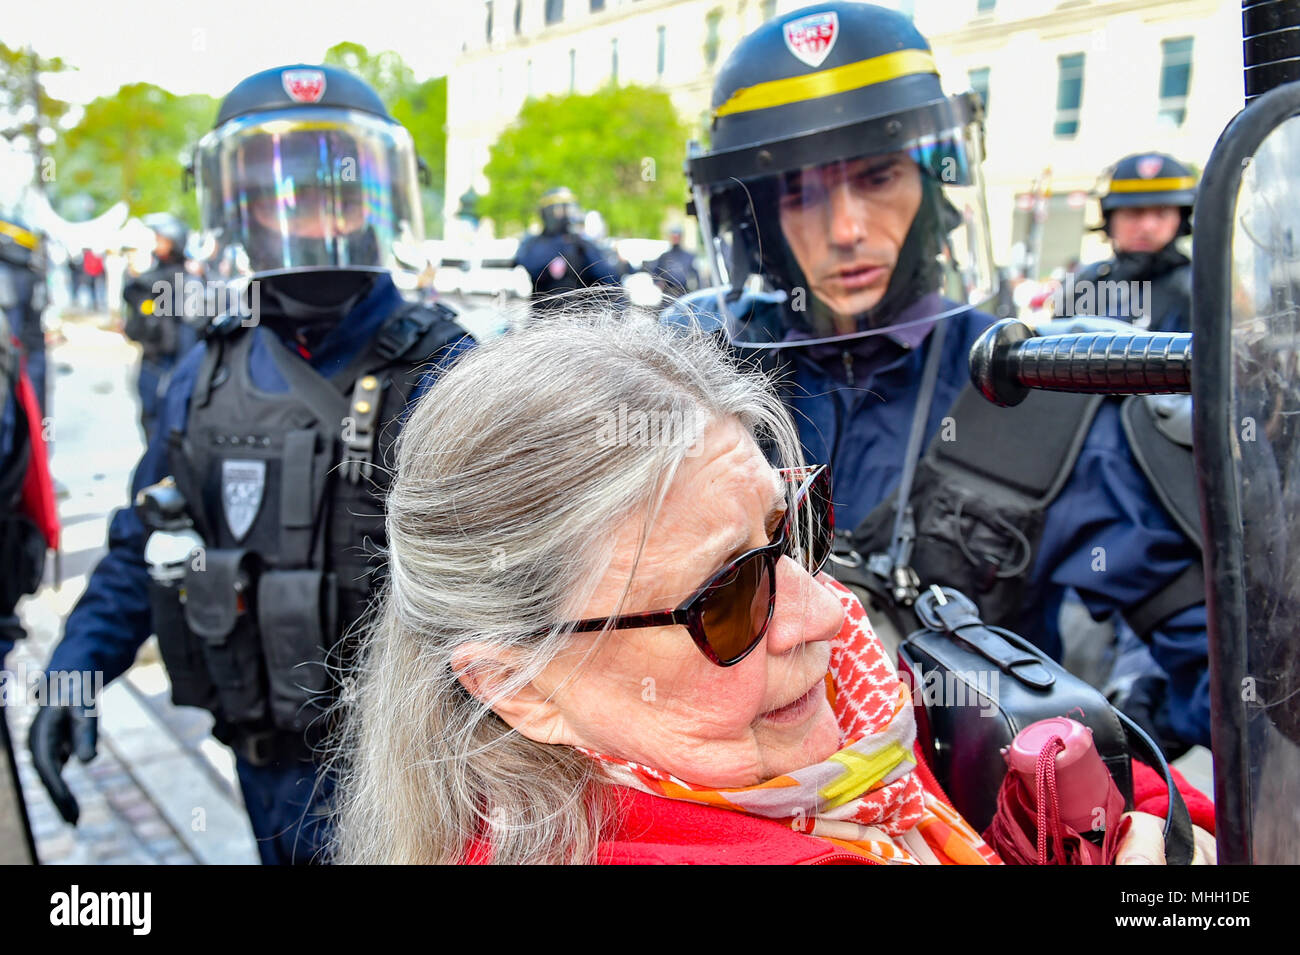 Paris, France. 1st May 2018. Paris police clash with protesters as demonstrations turn violent. PICTURED: A elderly woman is pushed by police. Credit: Peter Manning/Alamy Live News - Stock Image